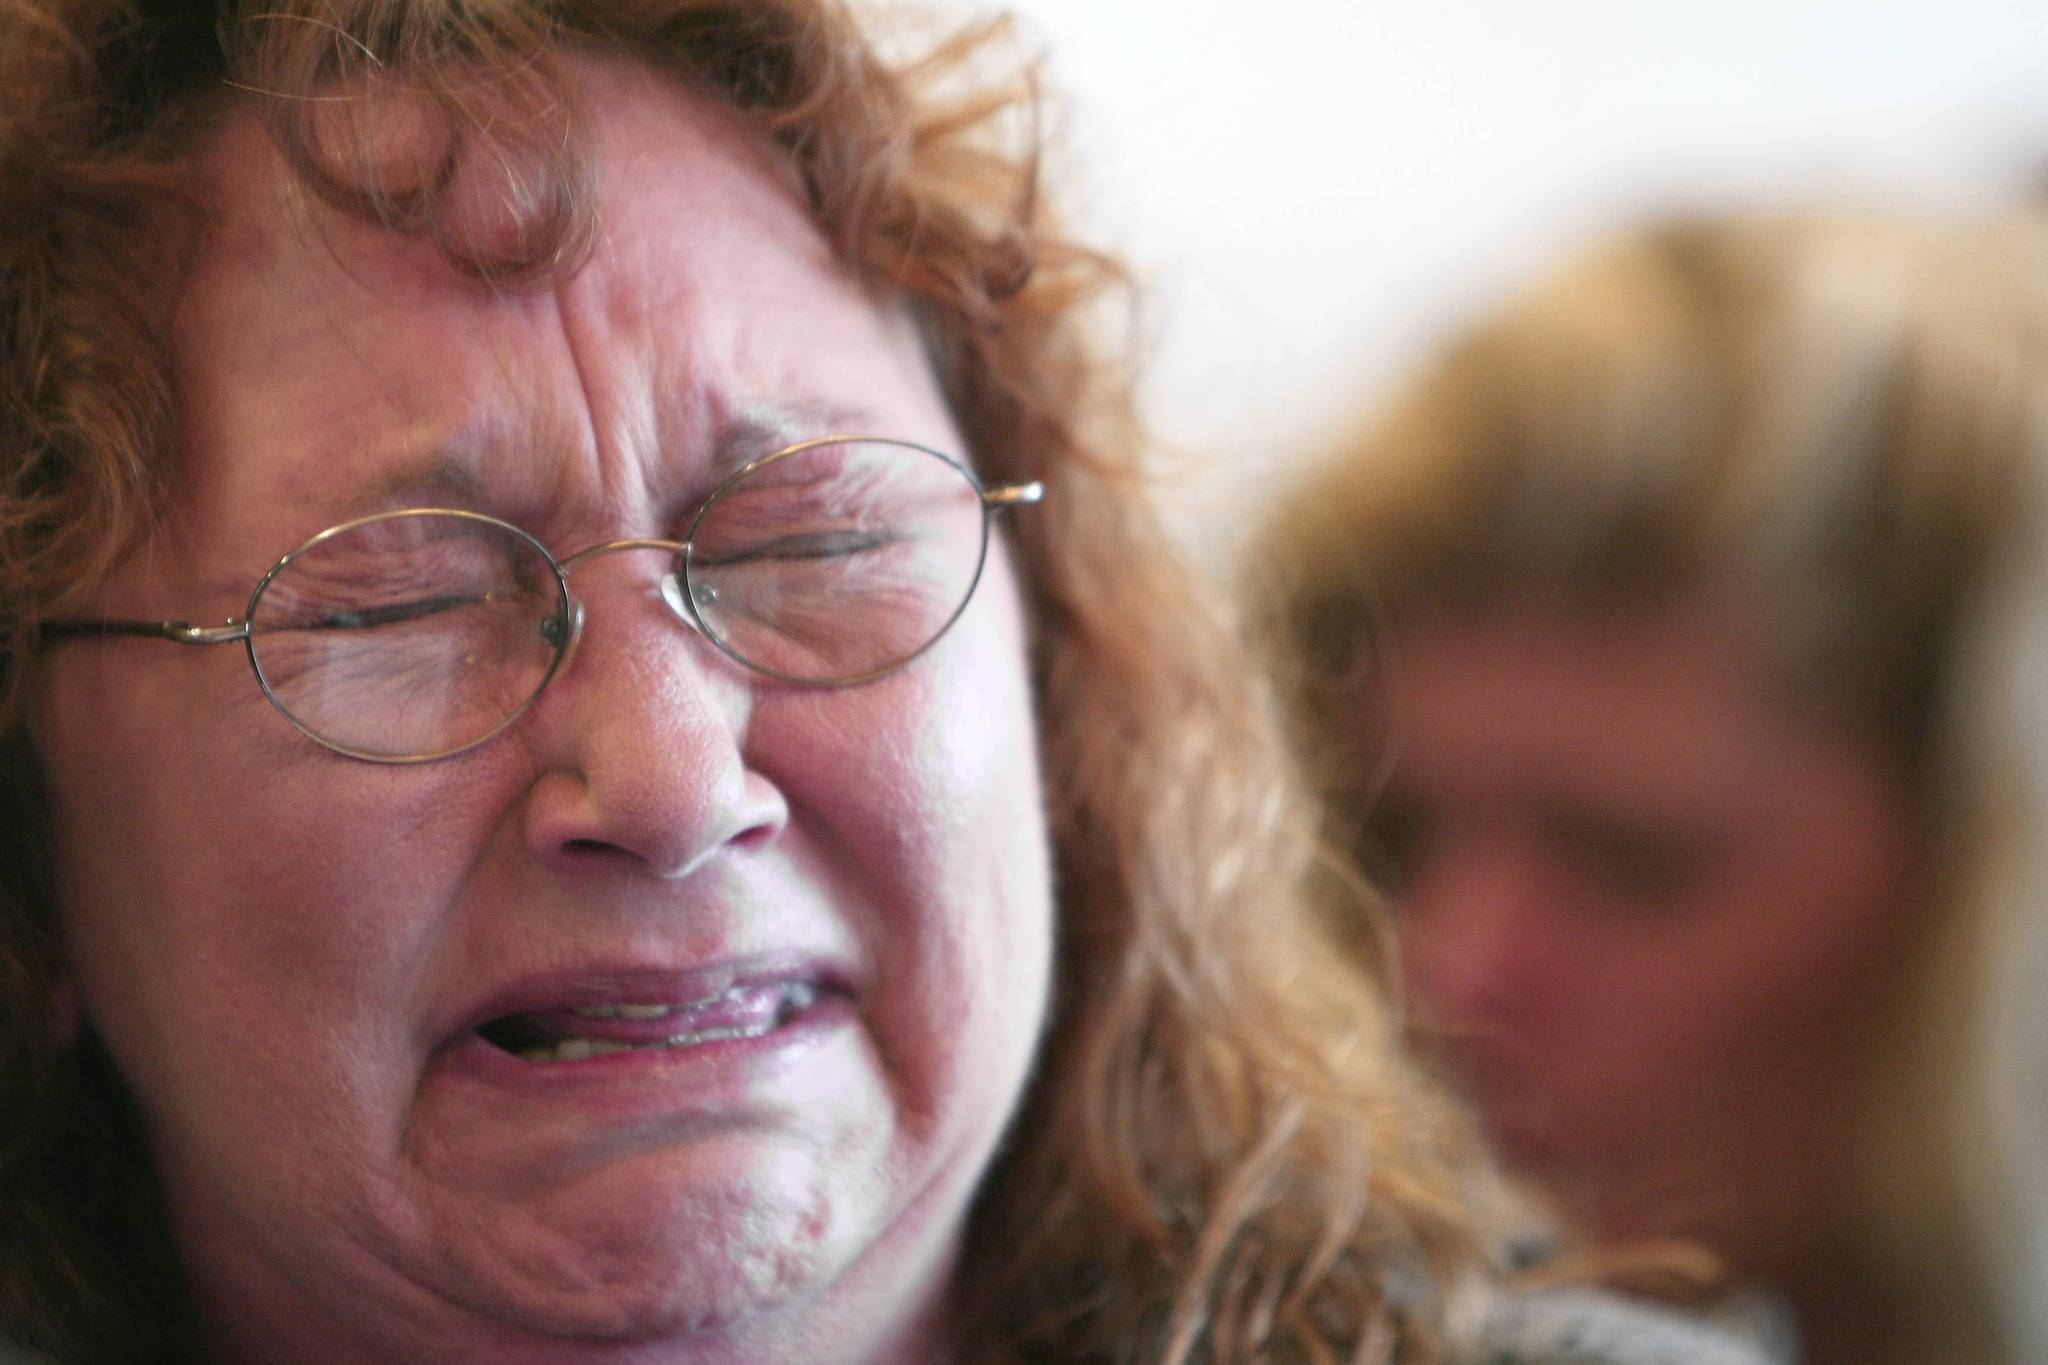 Amy Young cries uncontrollably during a press conference at attorney Mark NeJame&#039;s office regarding the shooting death of Andrew Scott, Young&#039;s son, by a Lake County Sheriff&#039;s deputy. Orlando, Fla., Monday, August 13, 2012. (Gary W. Green/Orlando Sentinel) ORG XMIT: B582299614Z.1